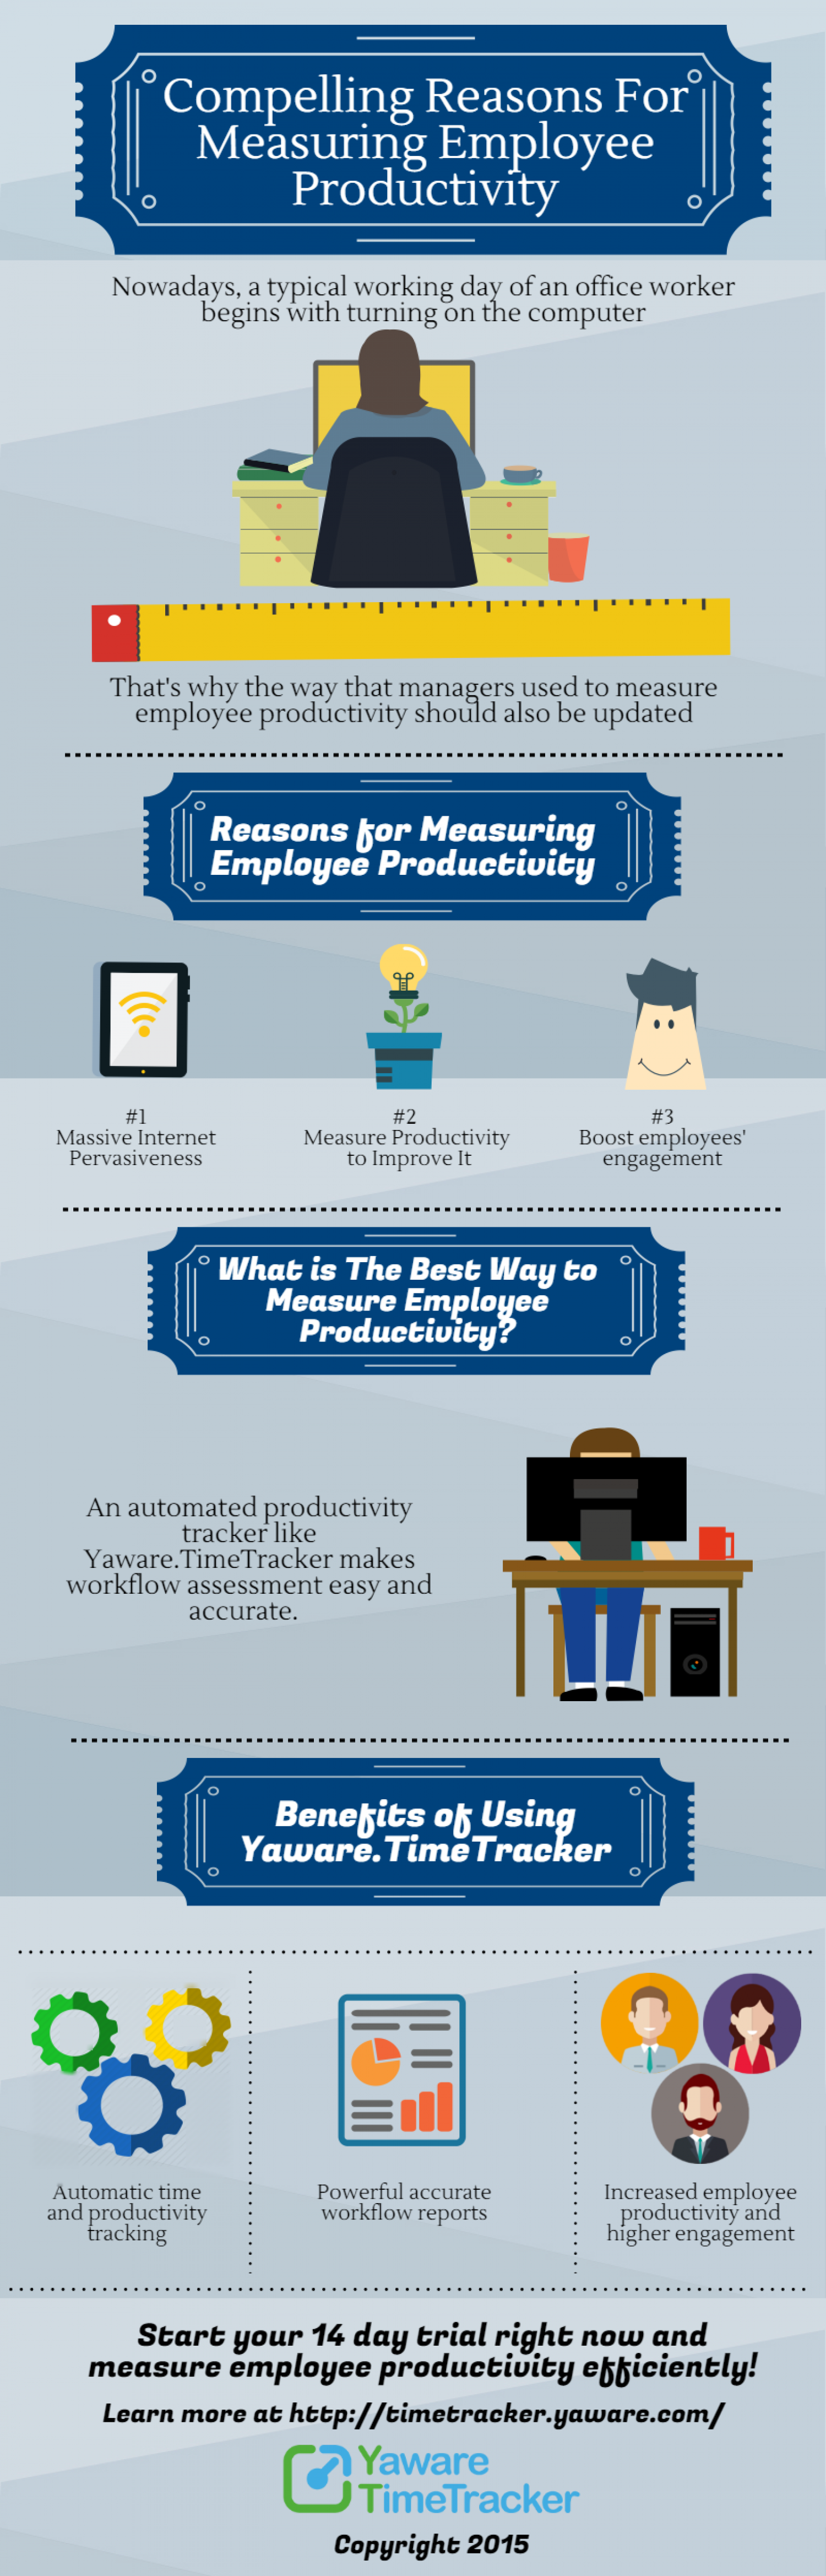 Compelling Reasons For Measuring Employee Productivity Infographic